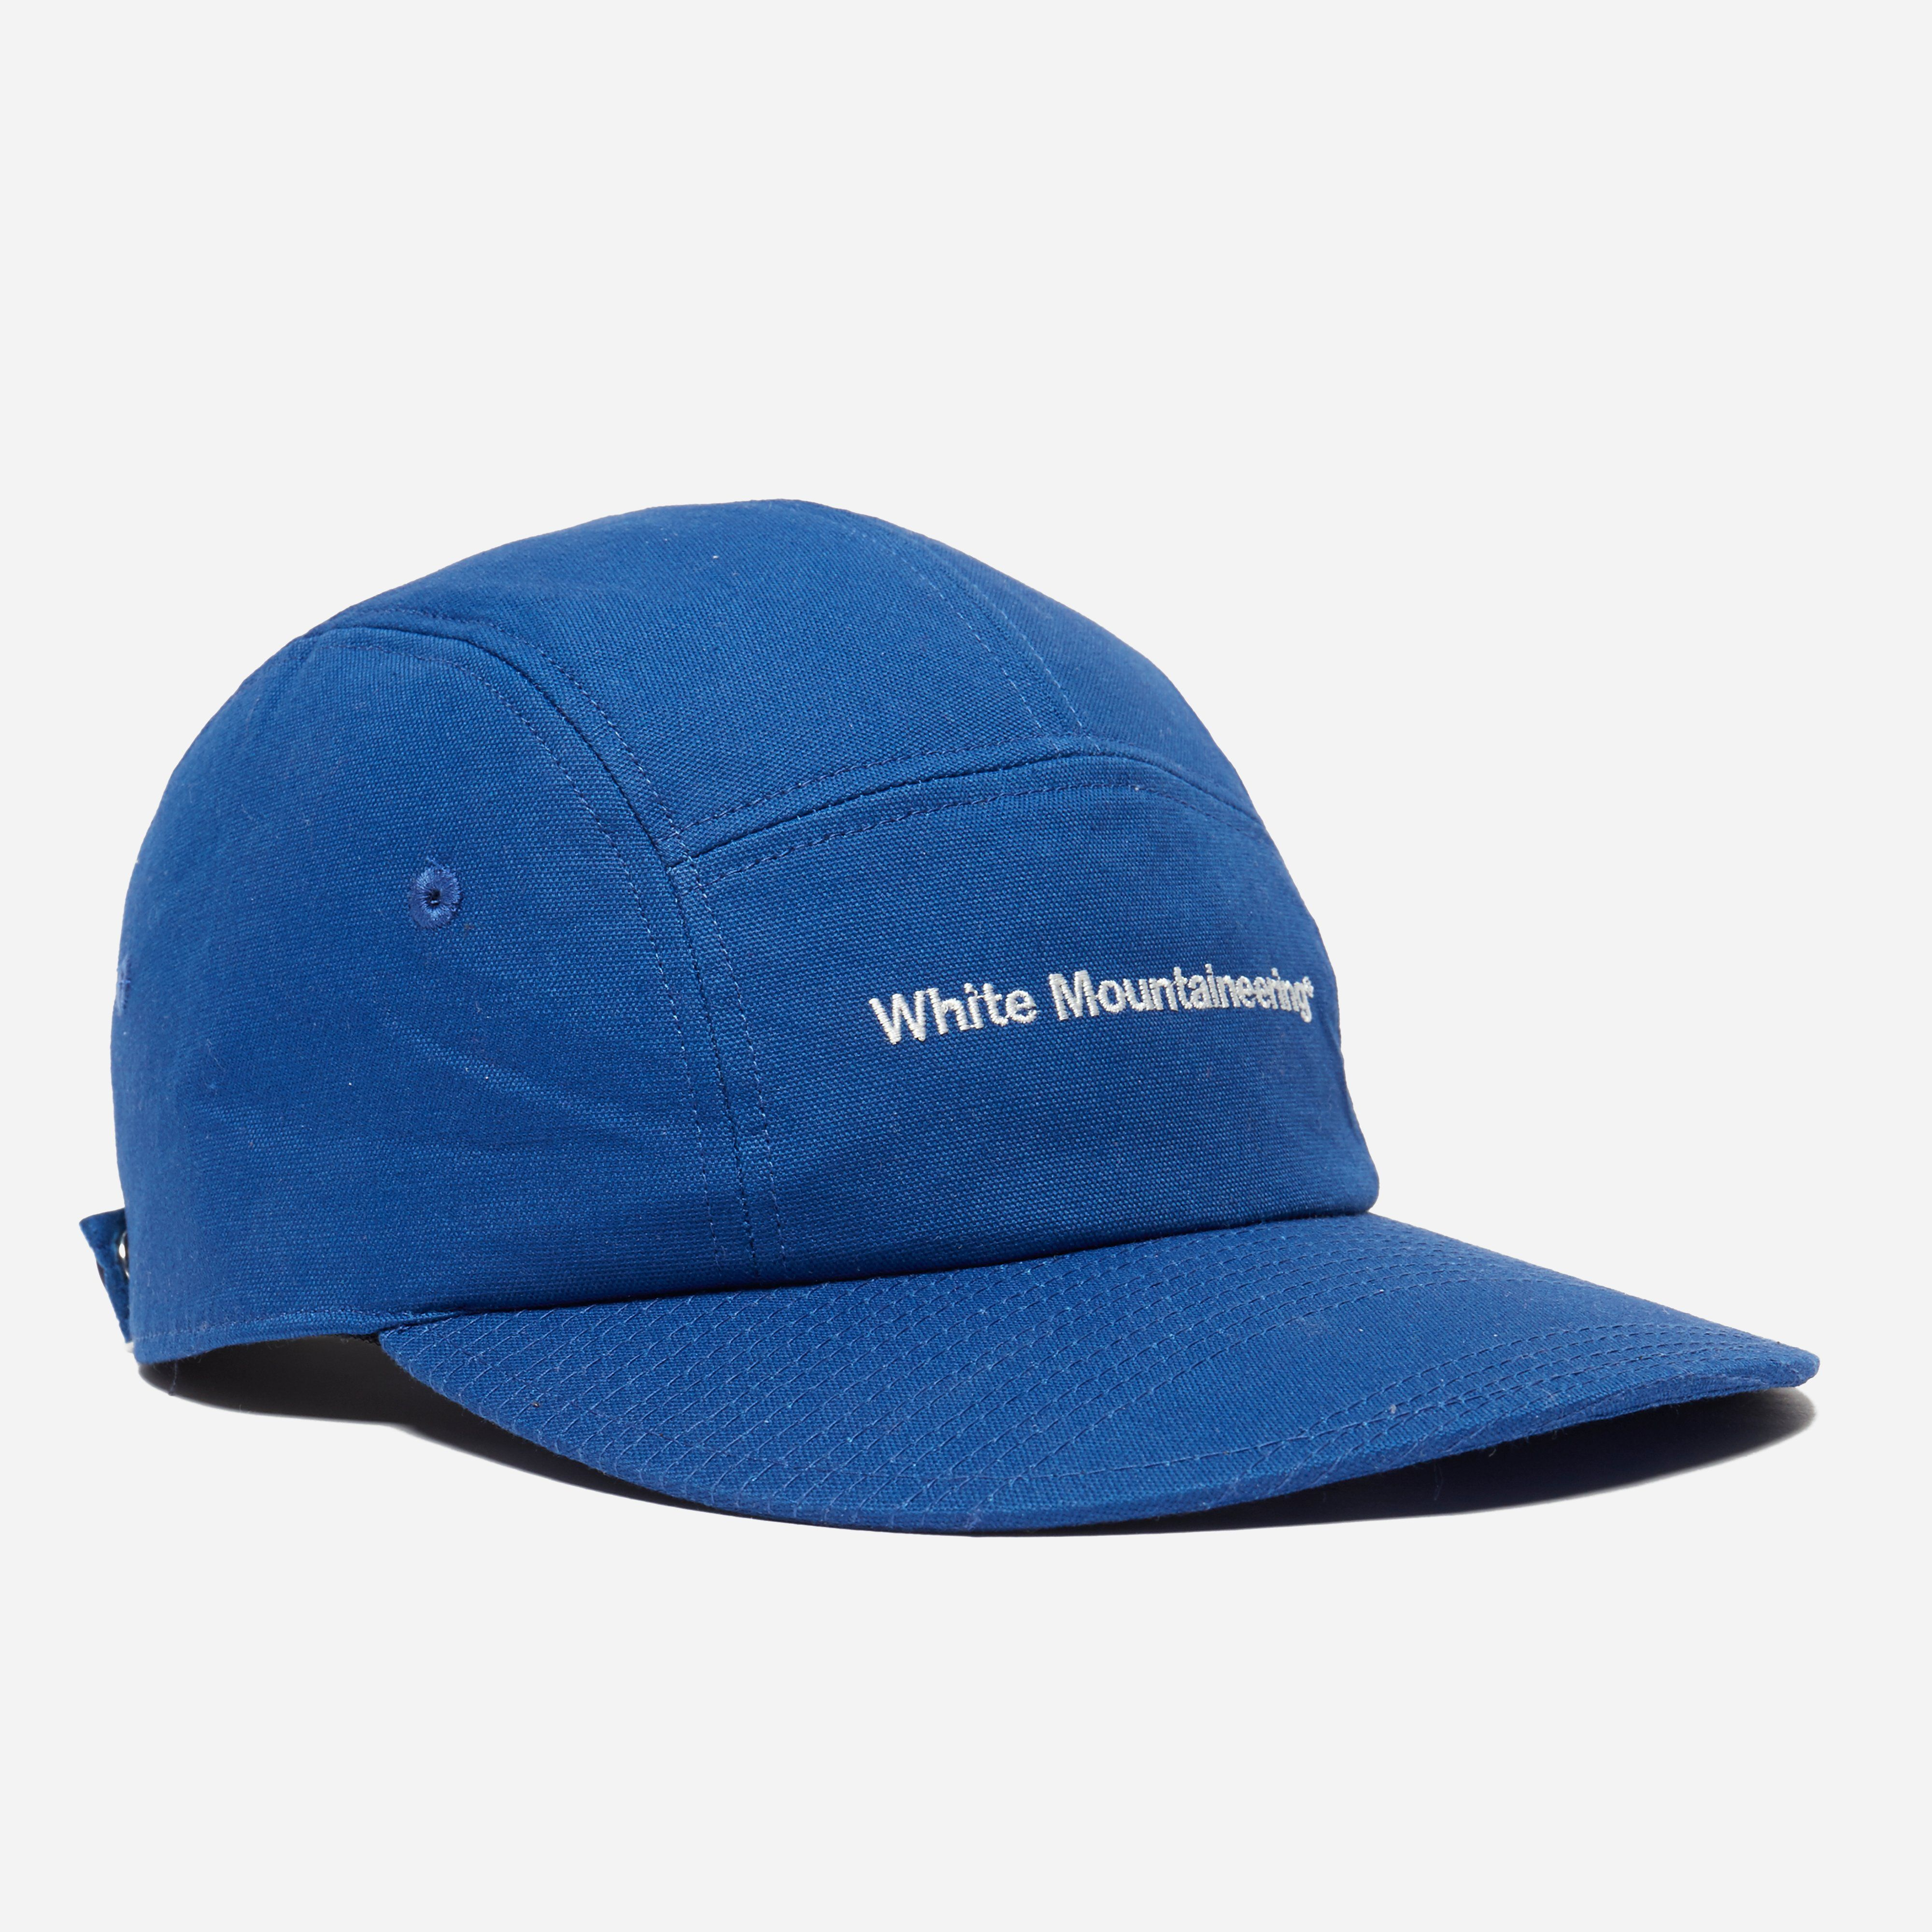 White Mountaineering Embroided Oxford Jet Cap